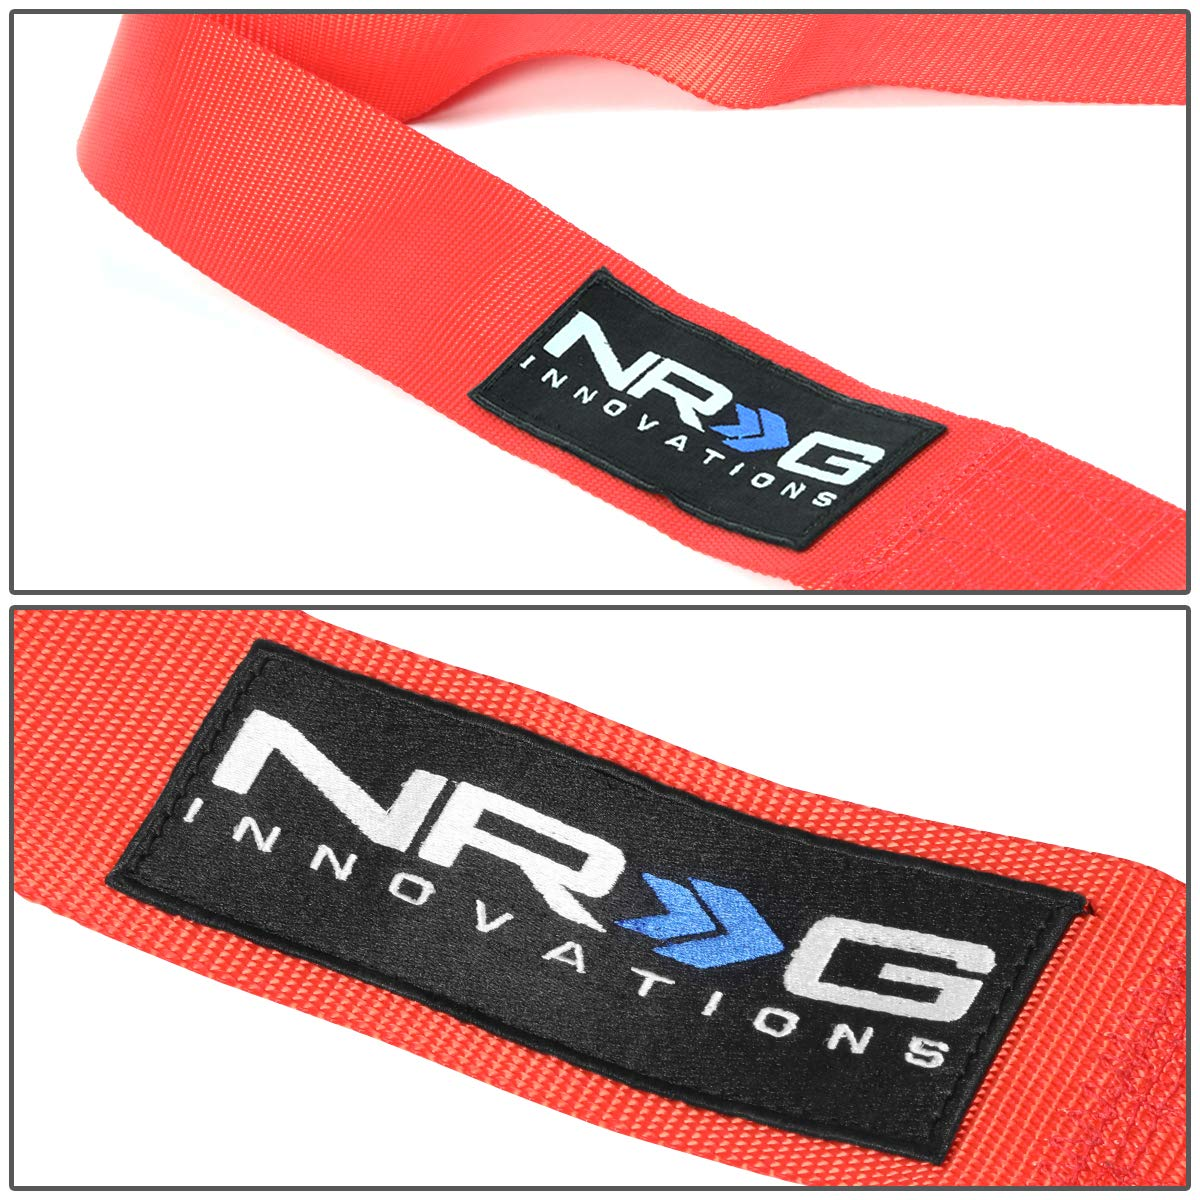 NRG Innovations SBH-RS5PCDCAMO-GY SFI Approved 5-Point Cam Lock Buckle Seat Belt Harness LED Keychain Flashlight